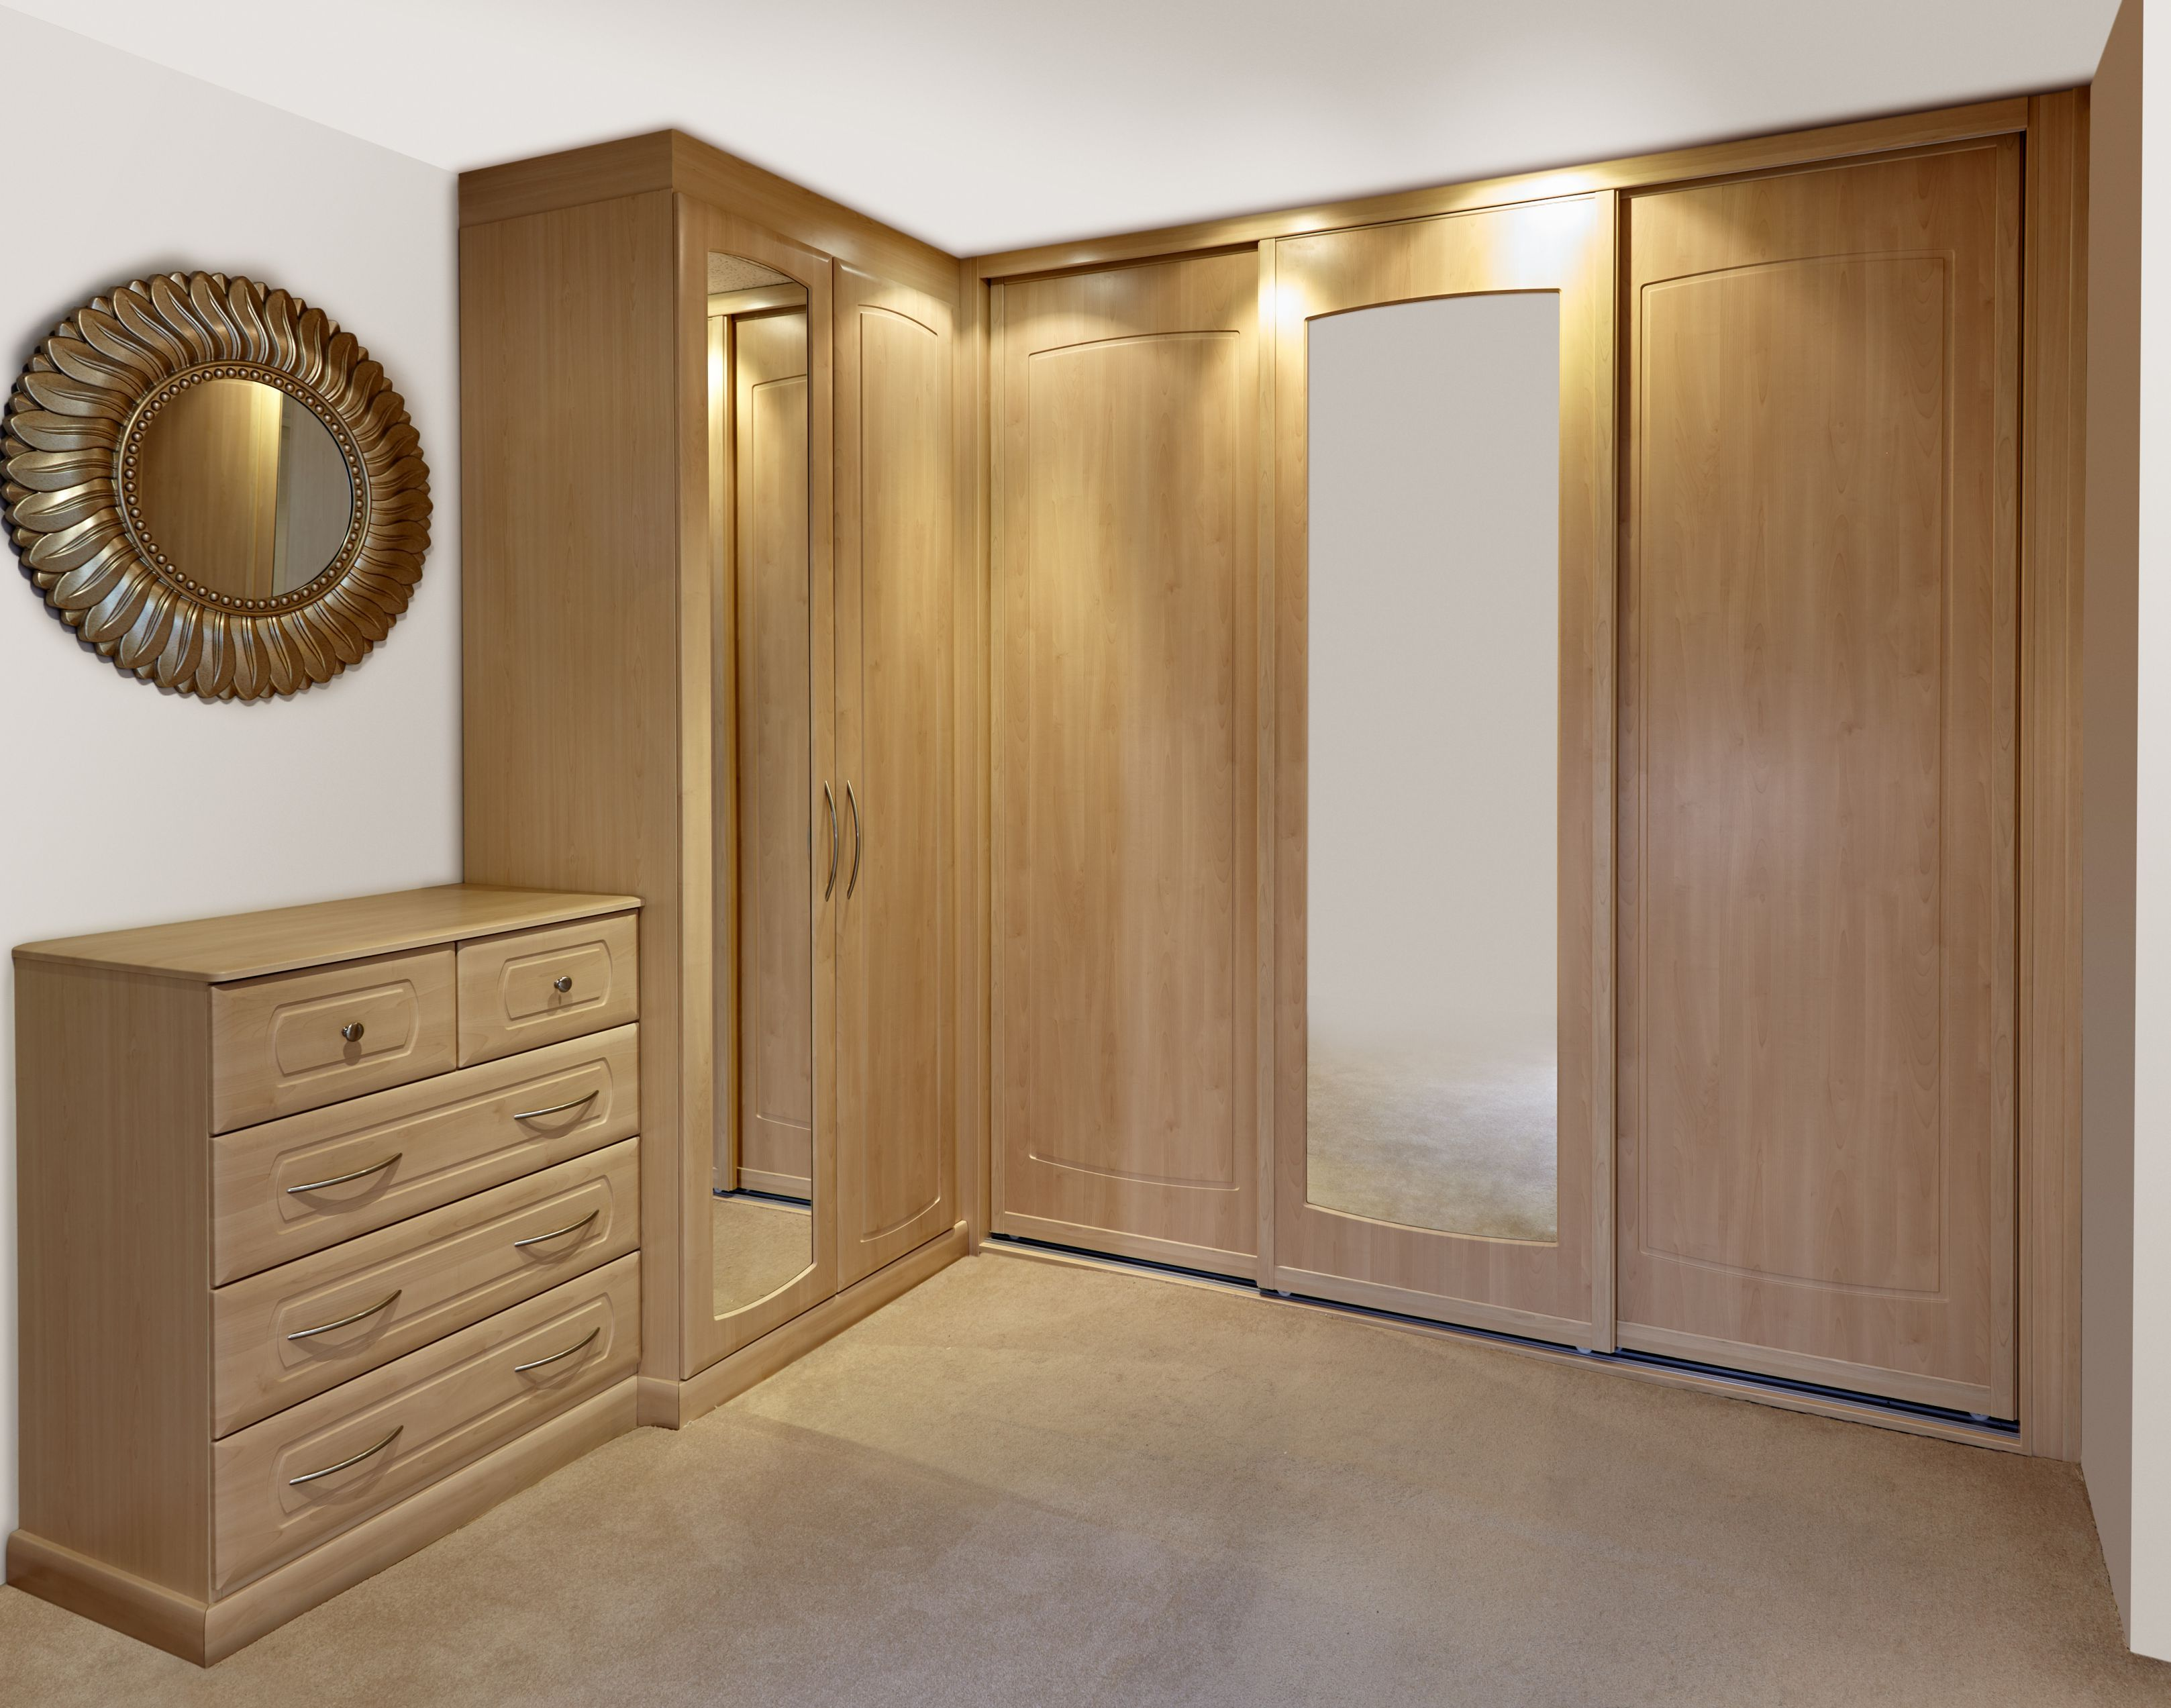 to bedroom furniture modern bespoke mirrored built closet wardrobe a fitted pin how ideas ltd build small